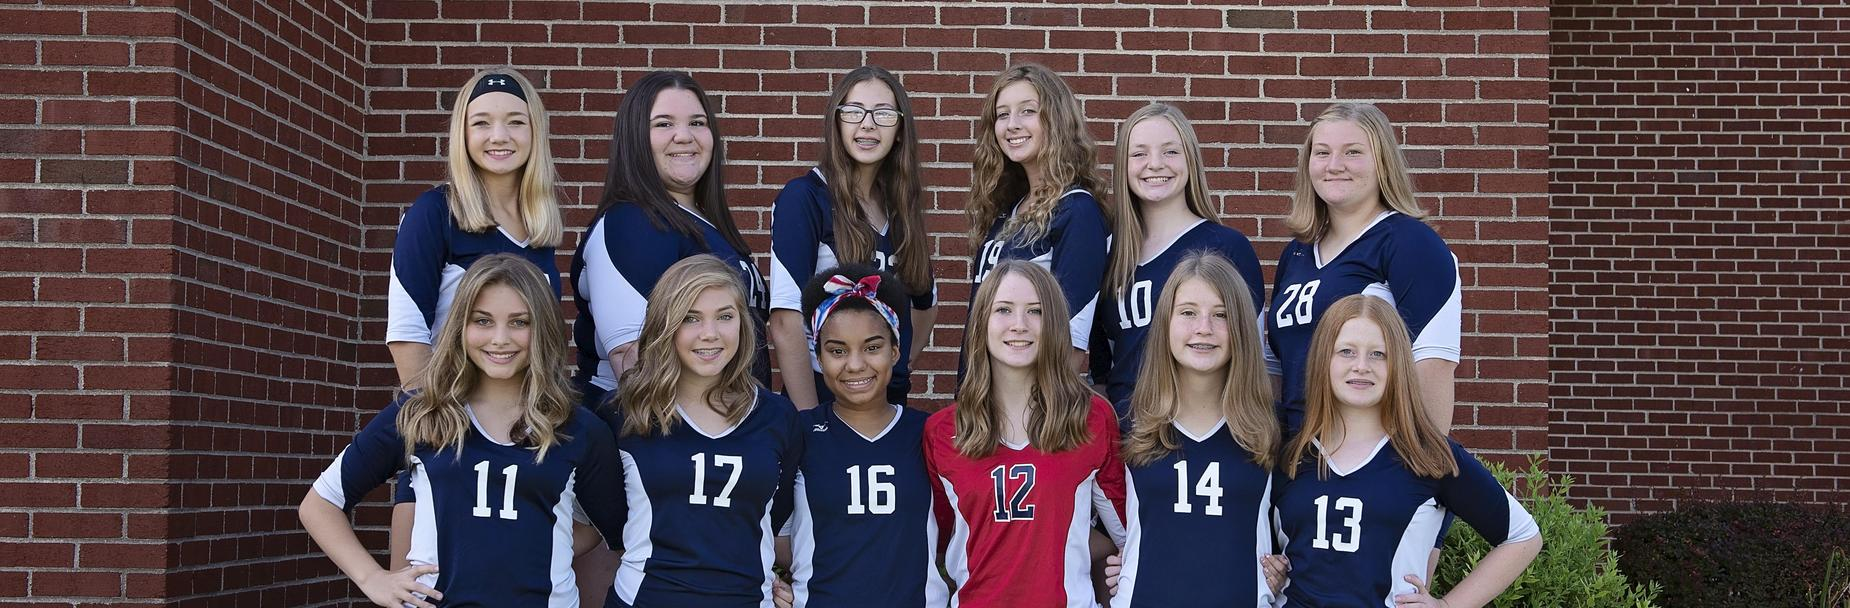 2019-2020 Carlinville High School Freshman Volleyball Team